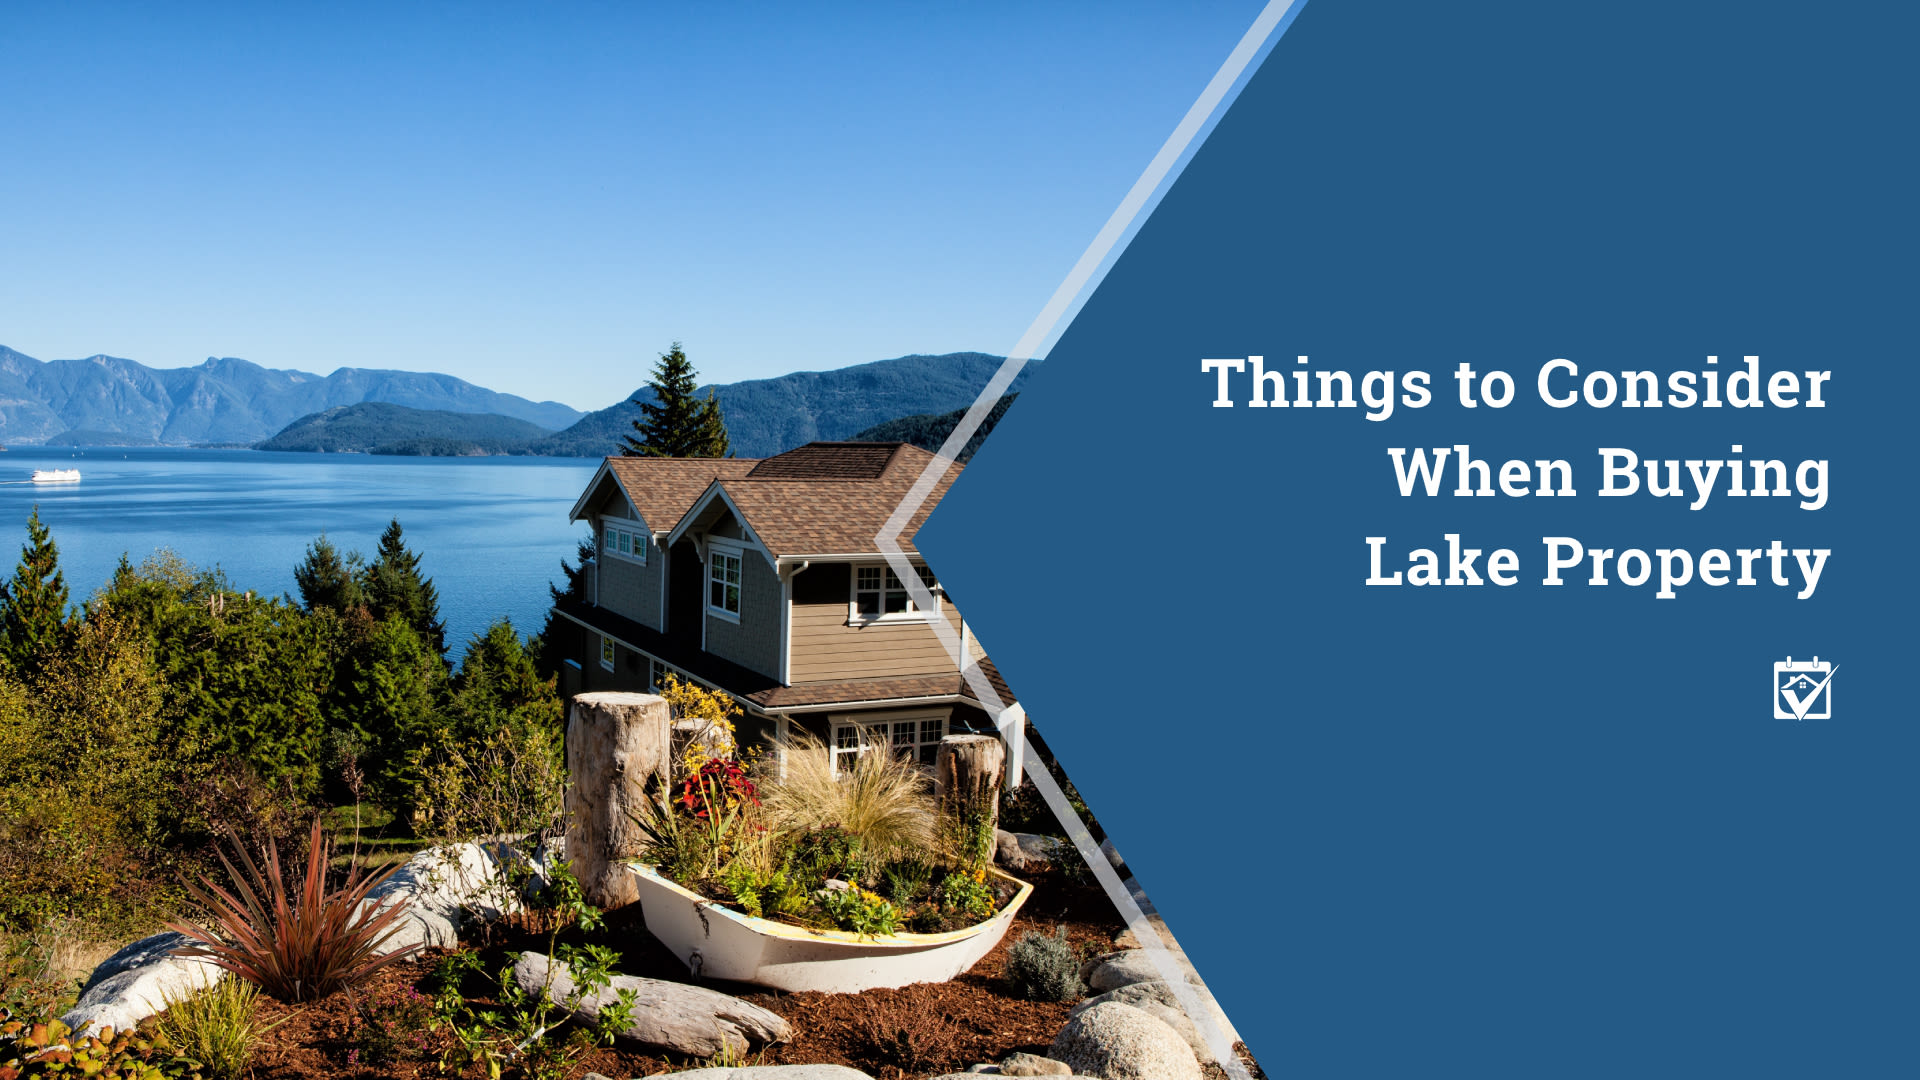 Things to Consider When Buying Lake Property